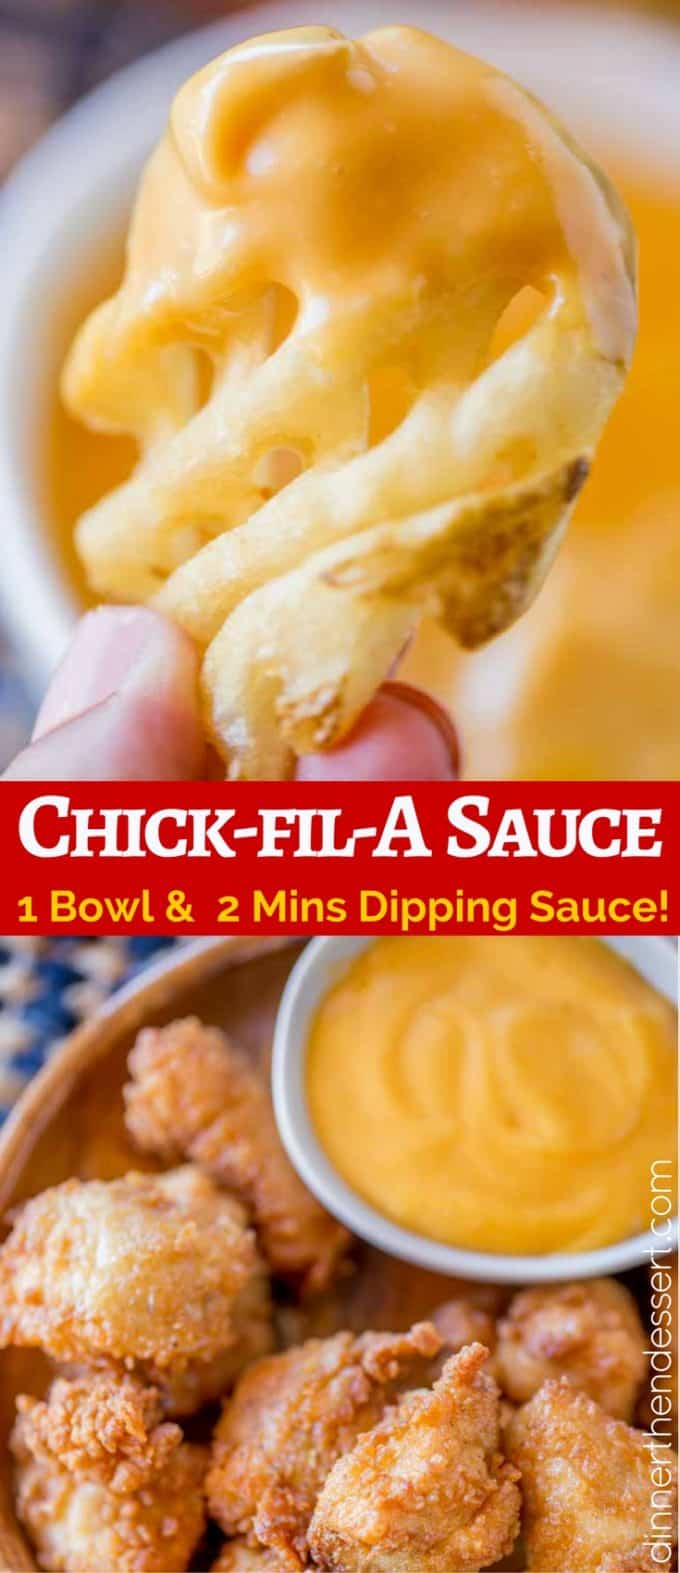 Chick-fil-A Sauce is an easy dipping sauce is slightly smoky with a hint of honey mustard that is perfect for dipping waffle fries, nuggets and more.